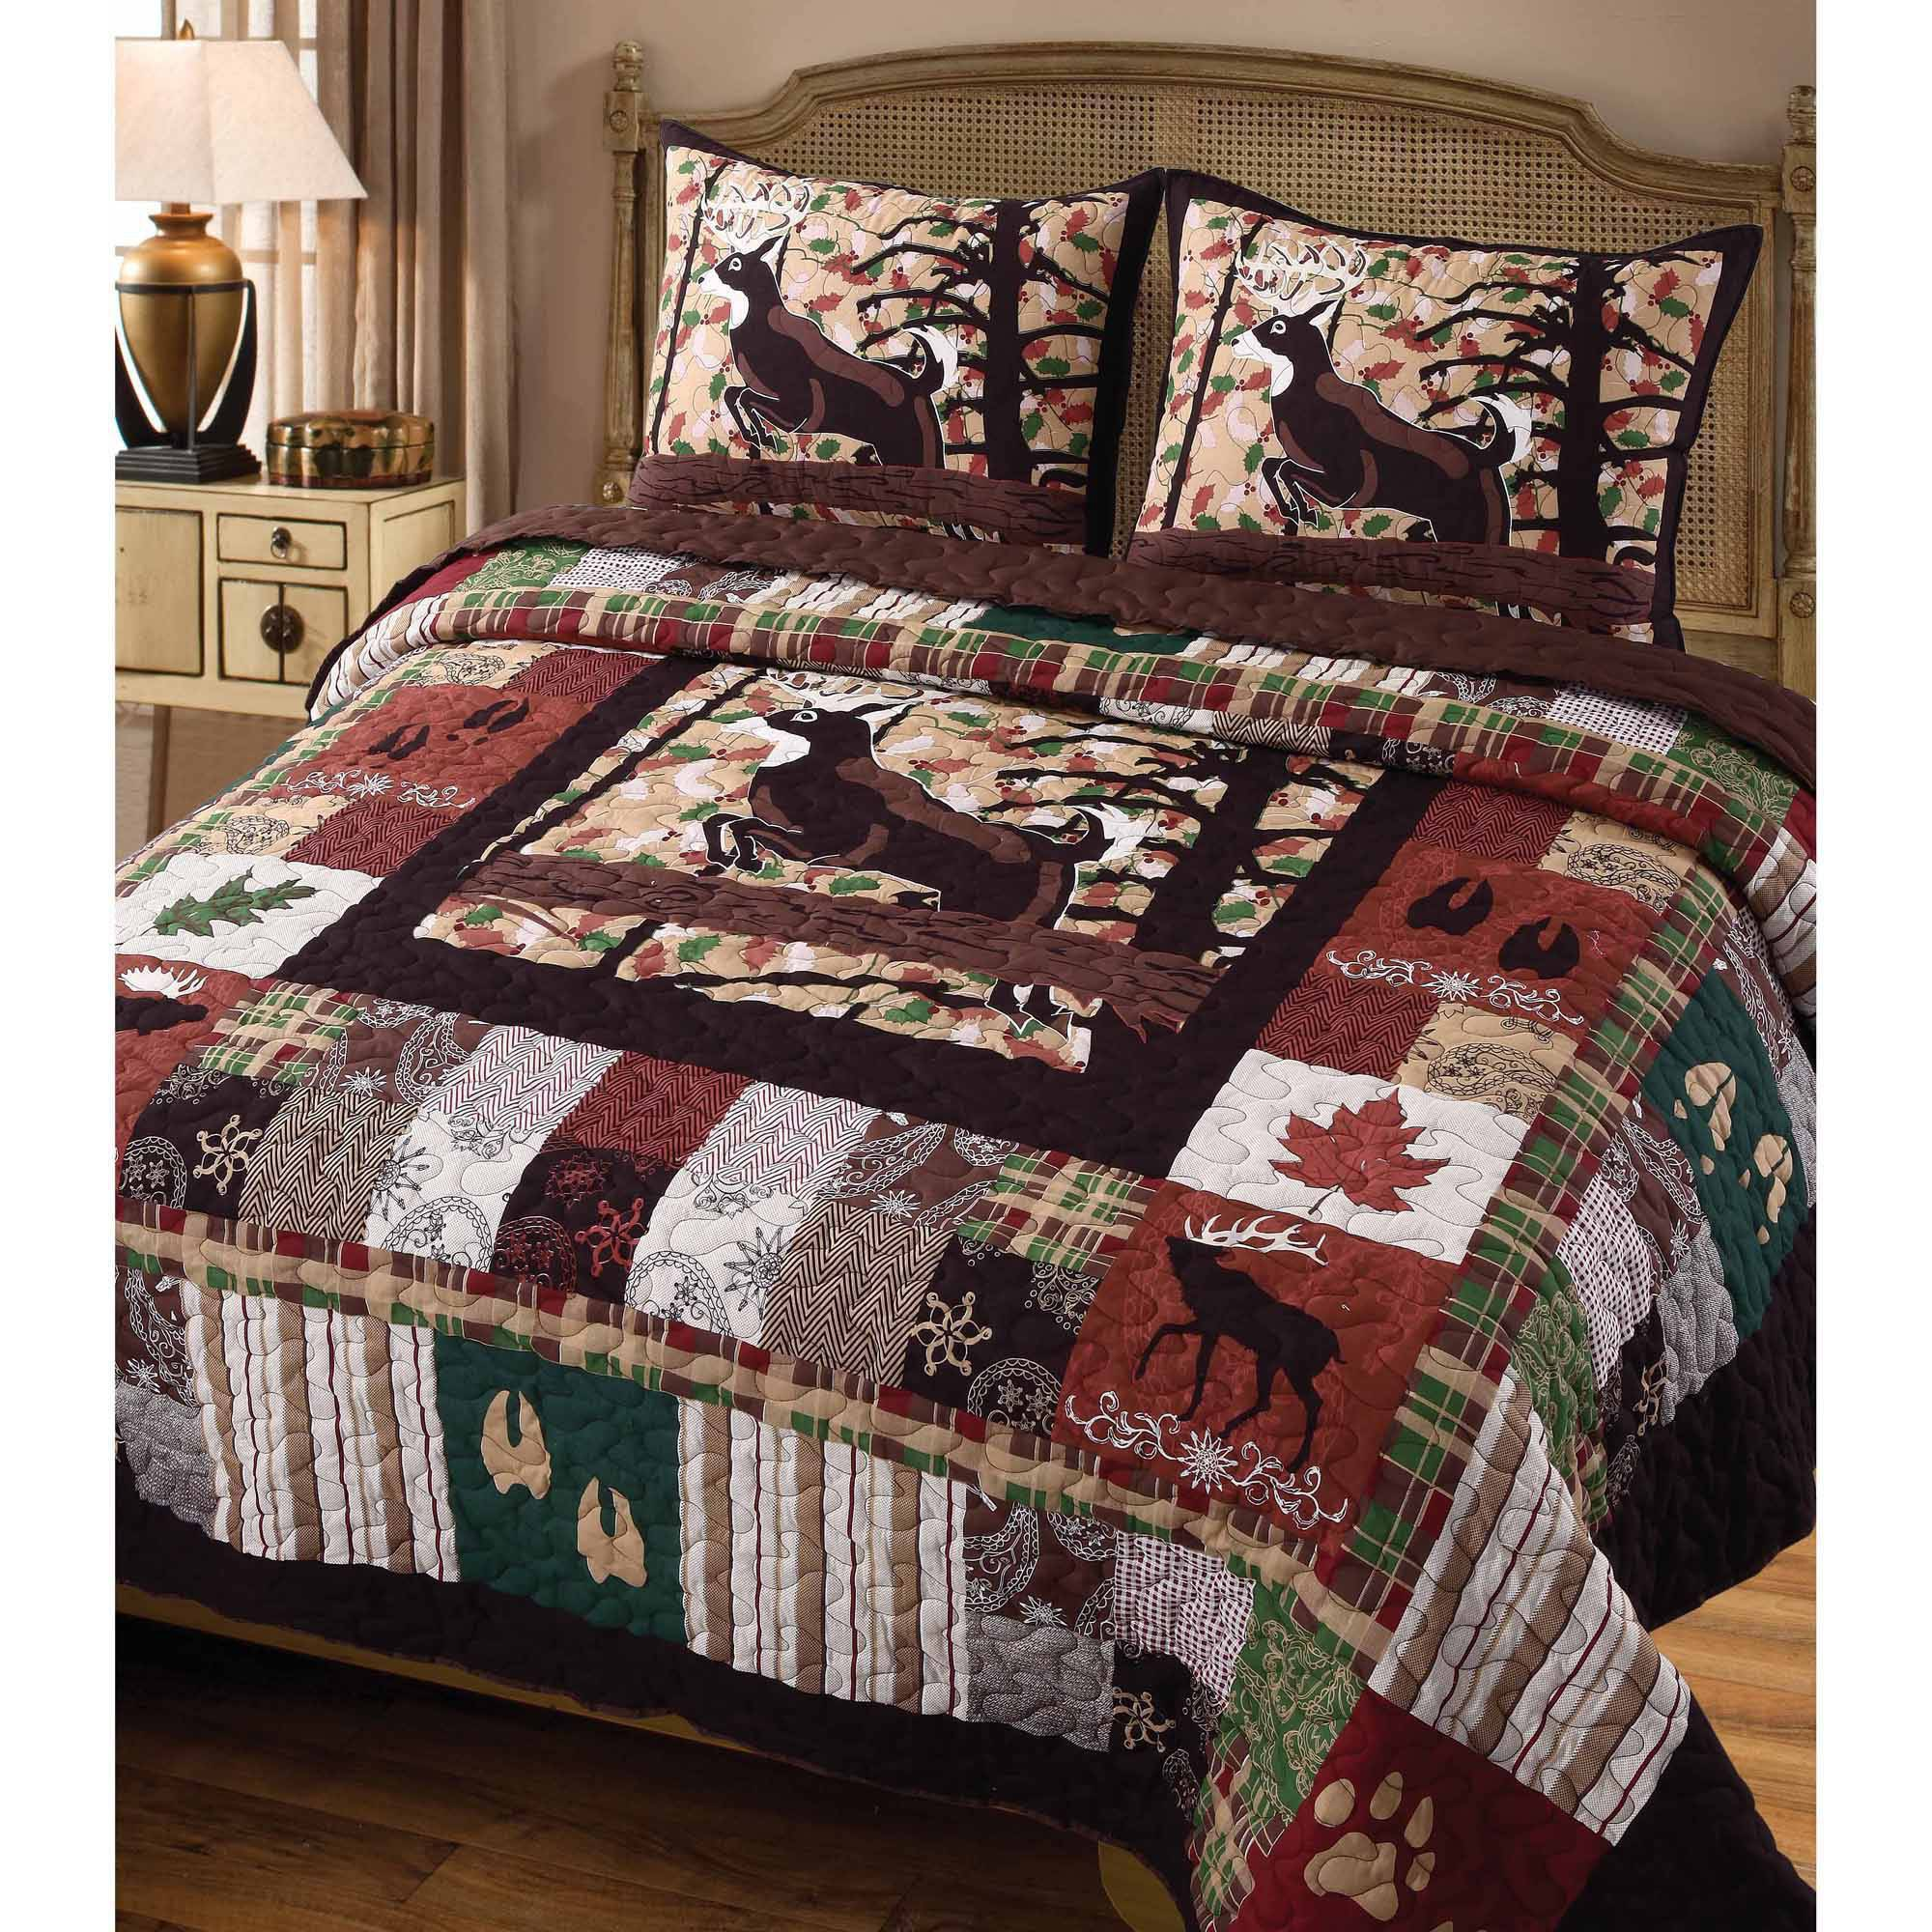 Global Trends Wildlife Lodge Bedding Quilt Set by Greenland Home Fashions